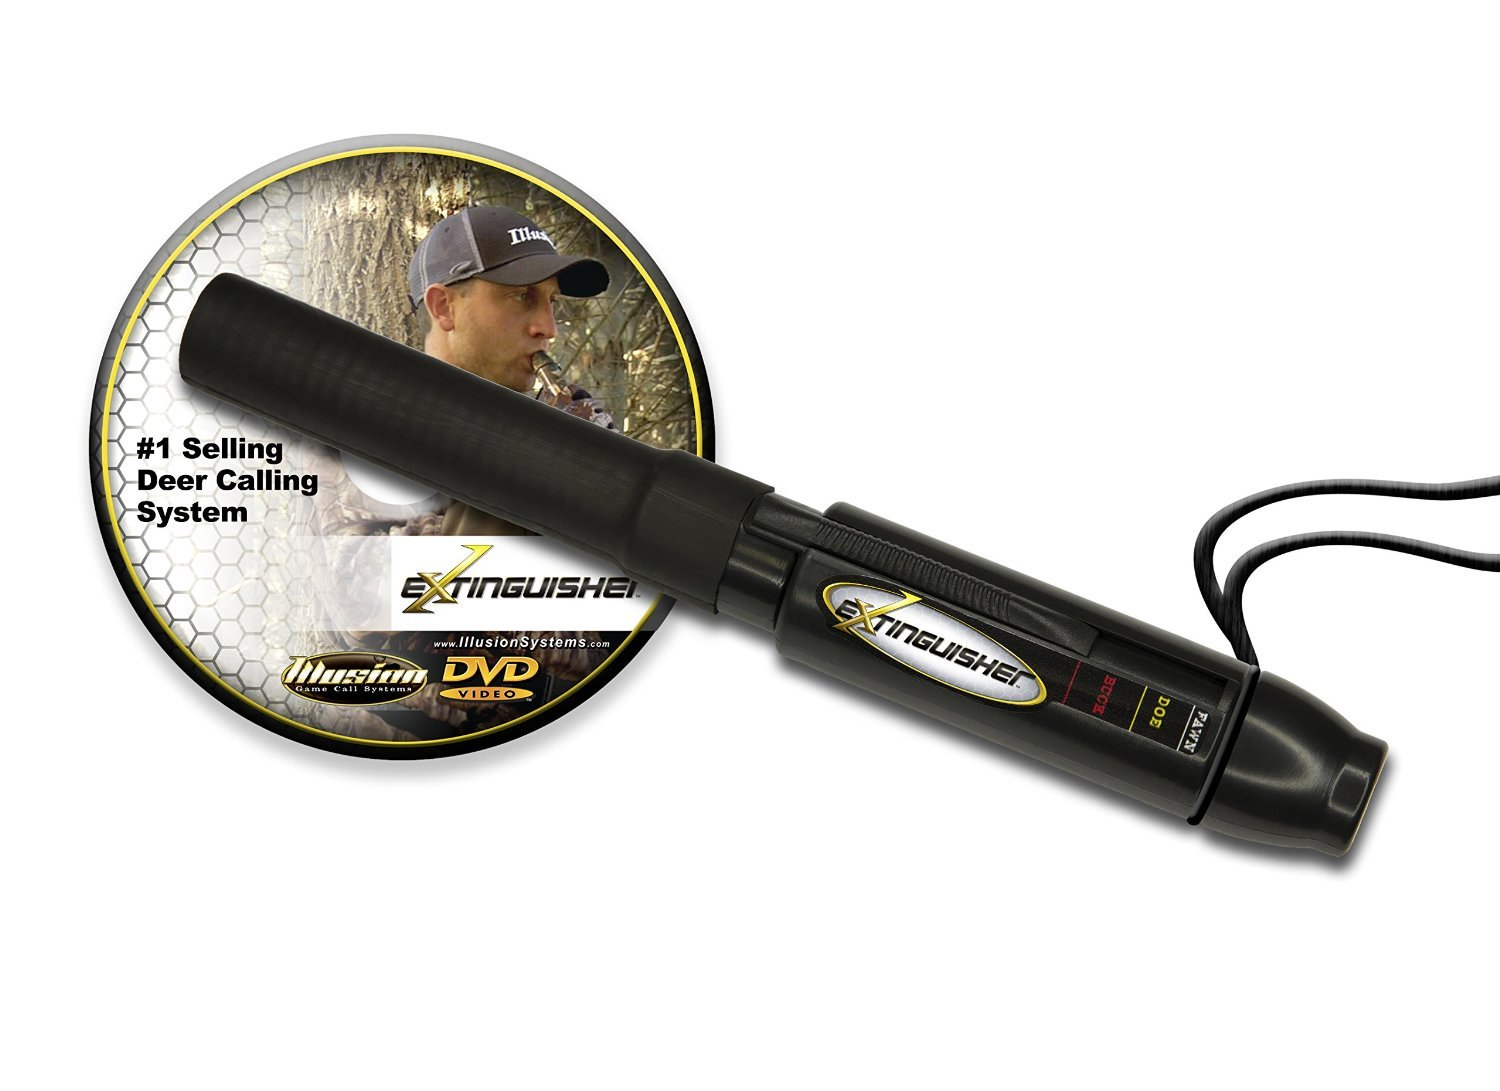 Extinguisher Deer Call (Black) with DVD Instructional + Blitz Clip-On Lighter by Illusion Systems (Image #2)